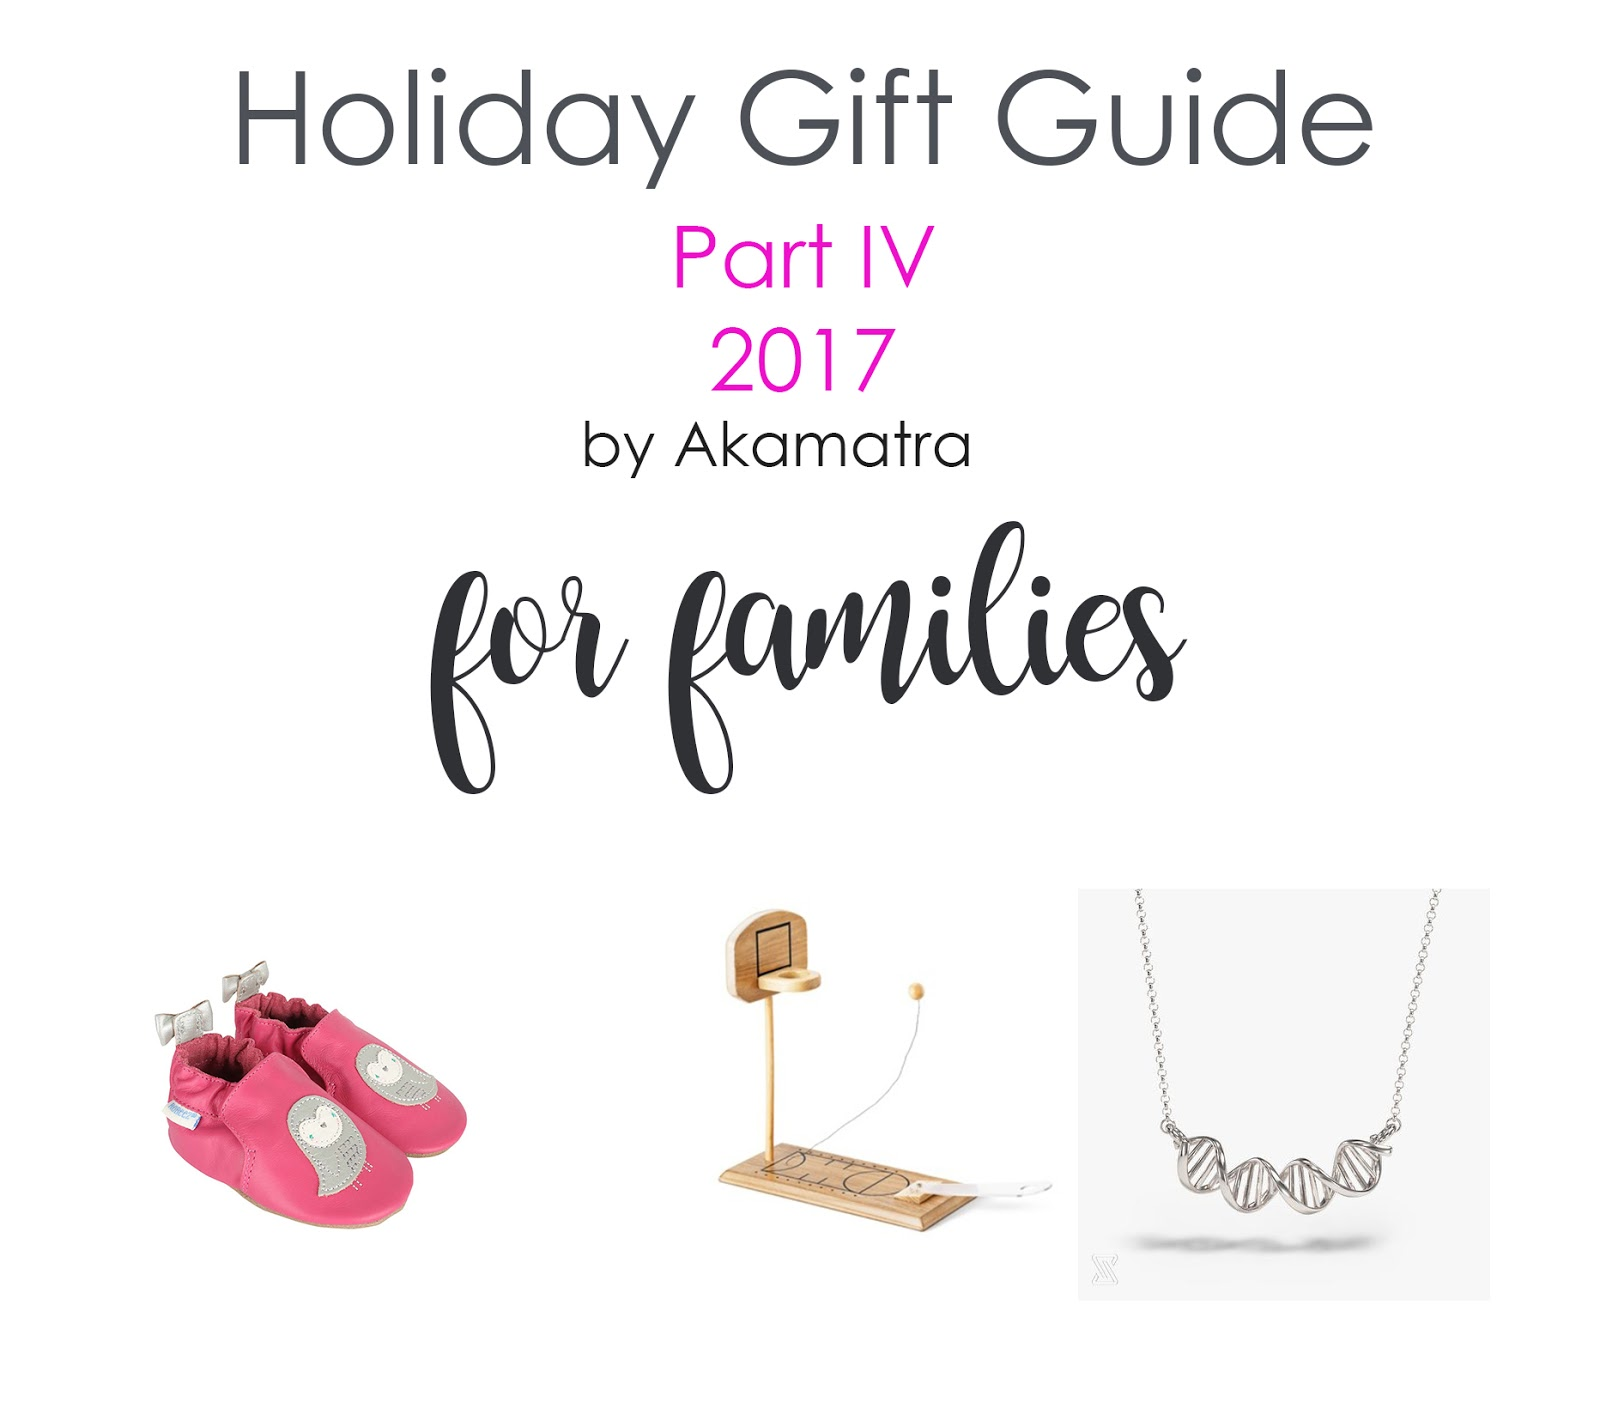 2017 Holiday Gift Guide part IV. For families.